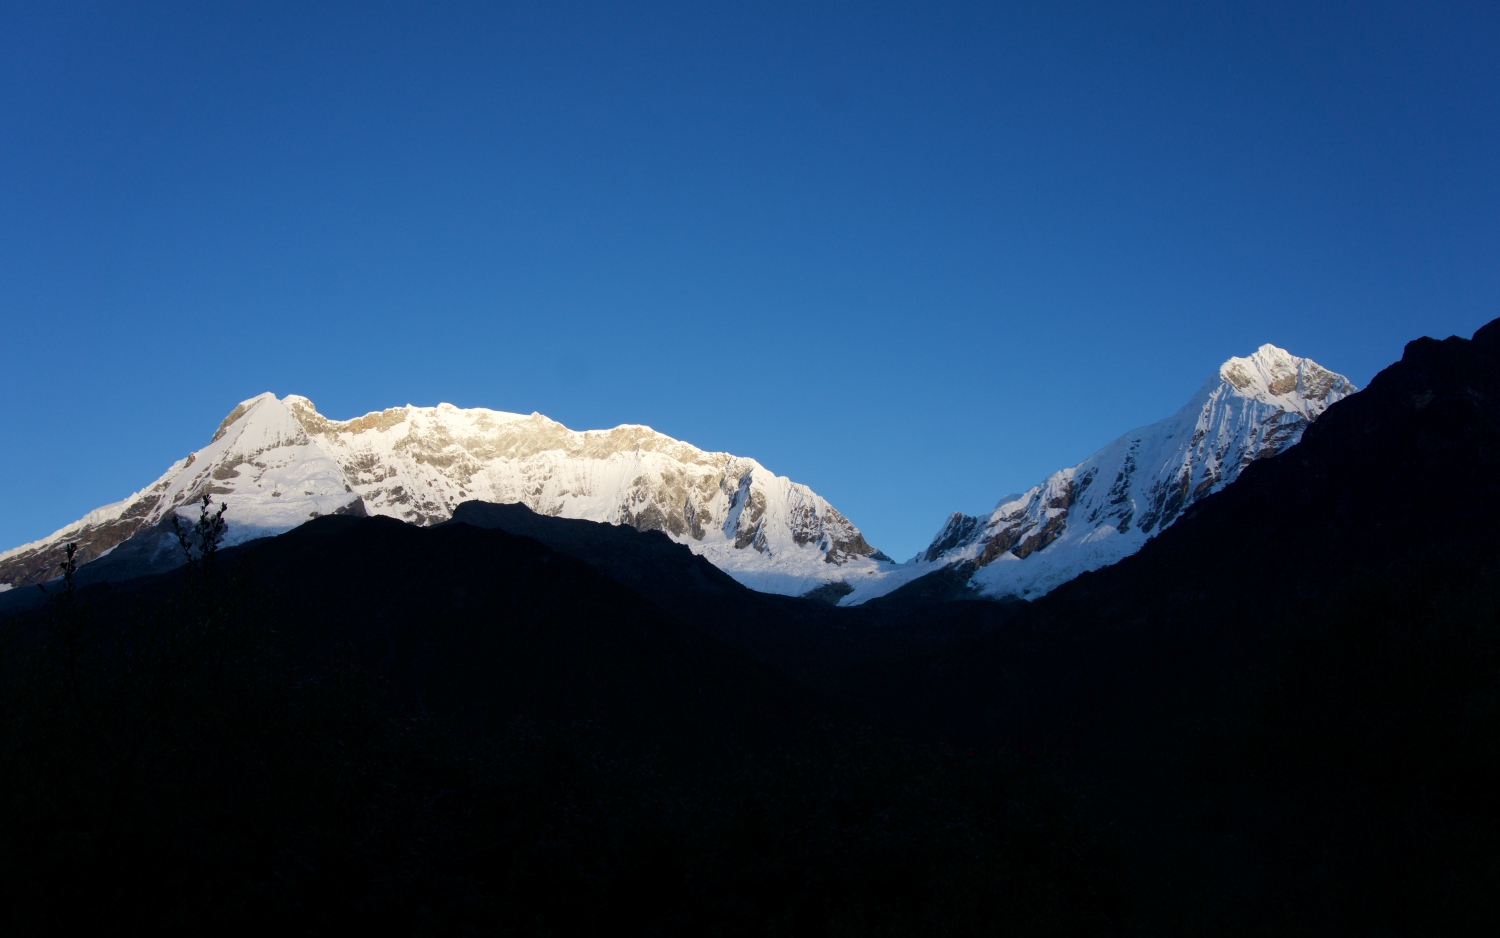 Sunrise in the Huascaran National Park.